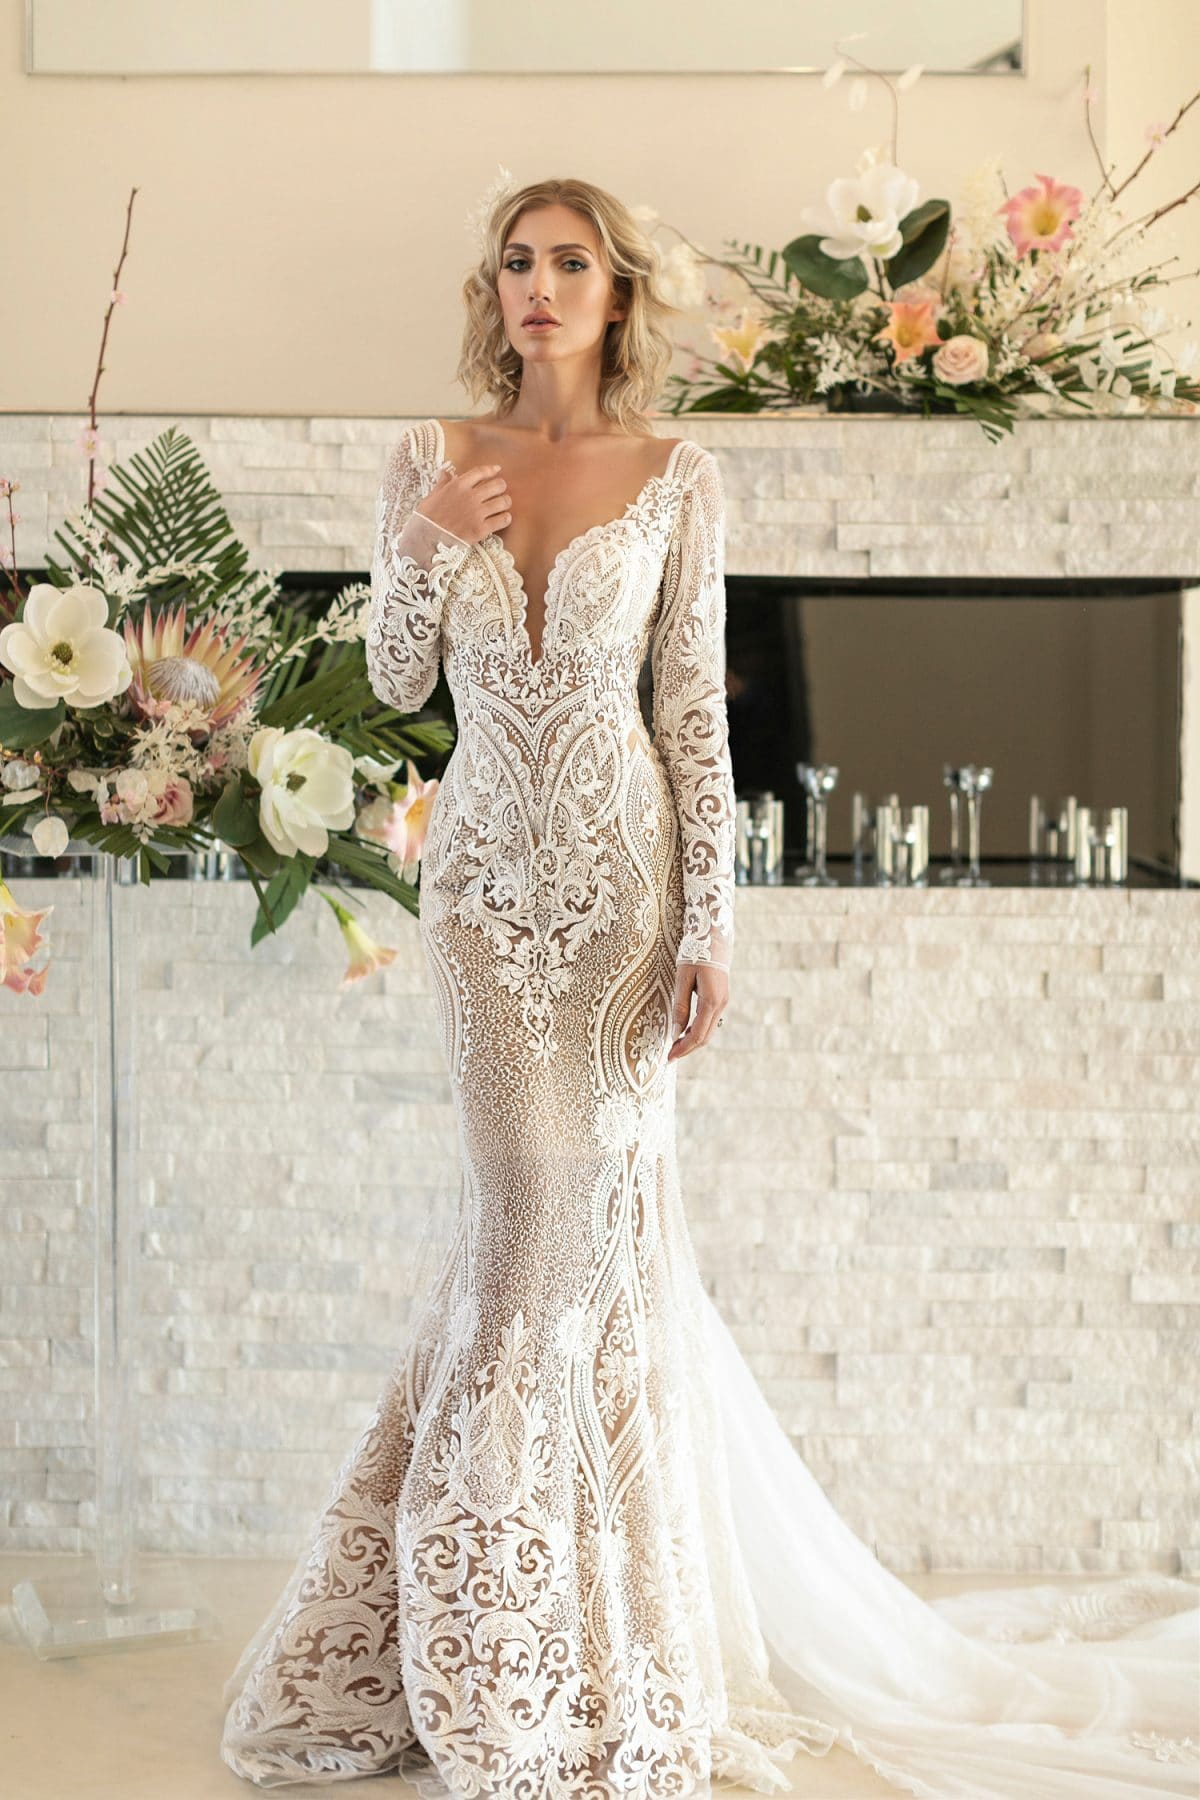 ca9b69c6ef2 Naama and Anat present their 2018 collection of exquisite bridal gowns